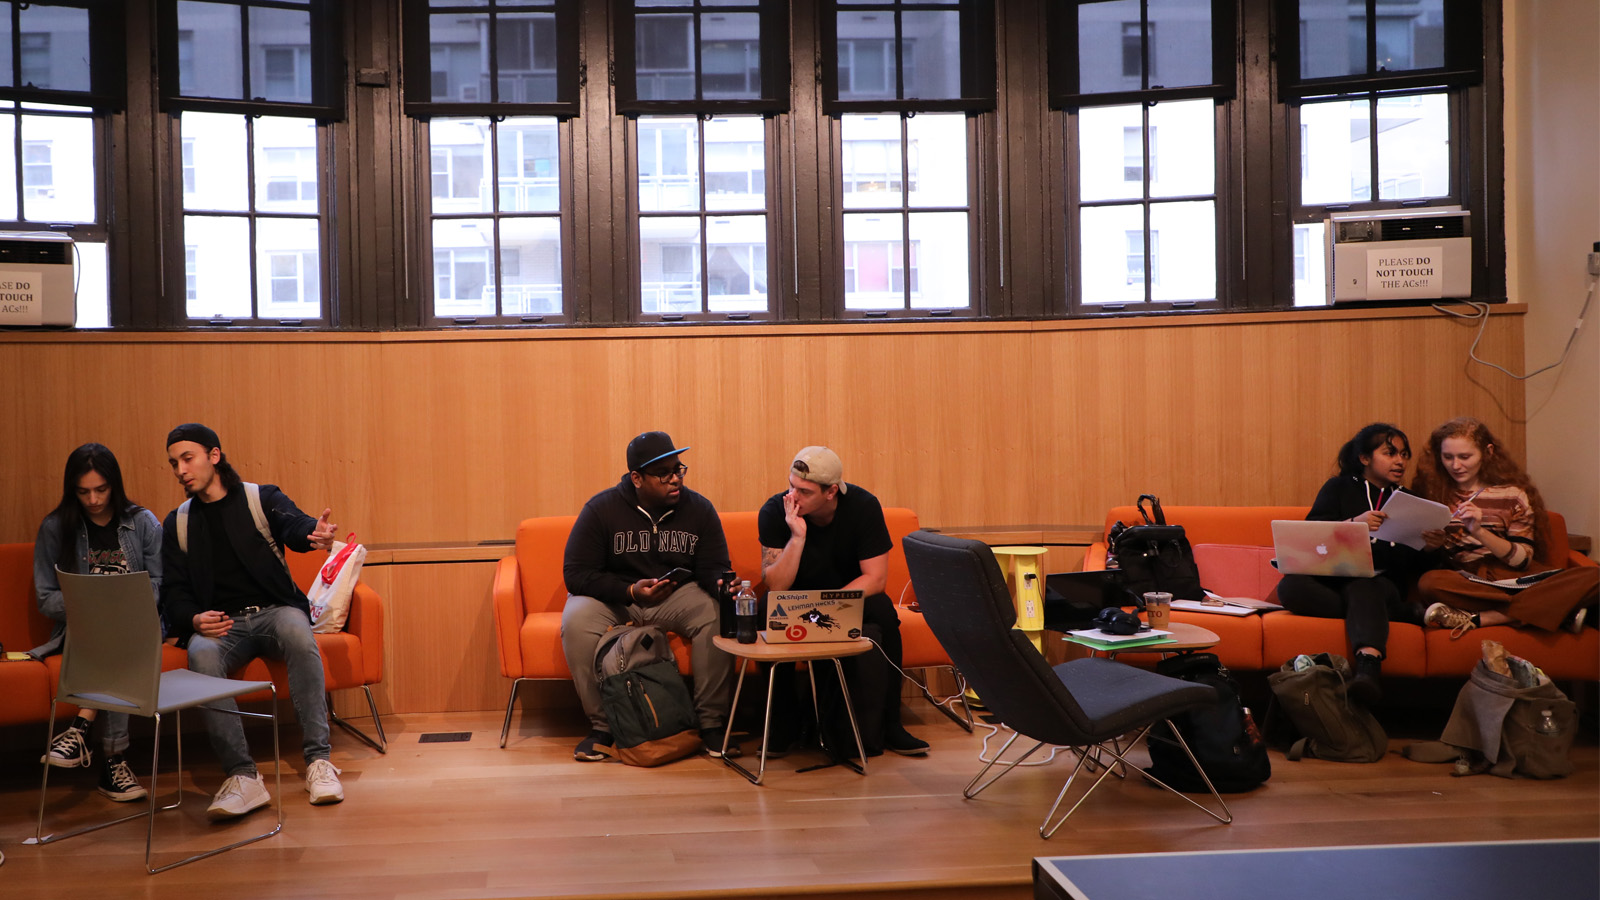 Students relaxing in the new Student Union